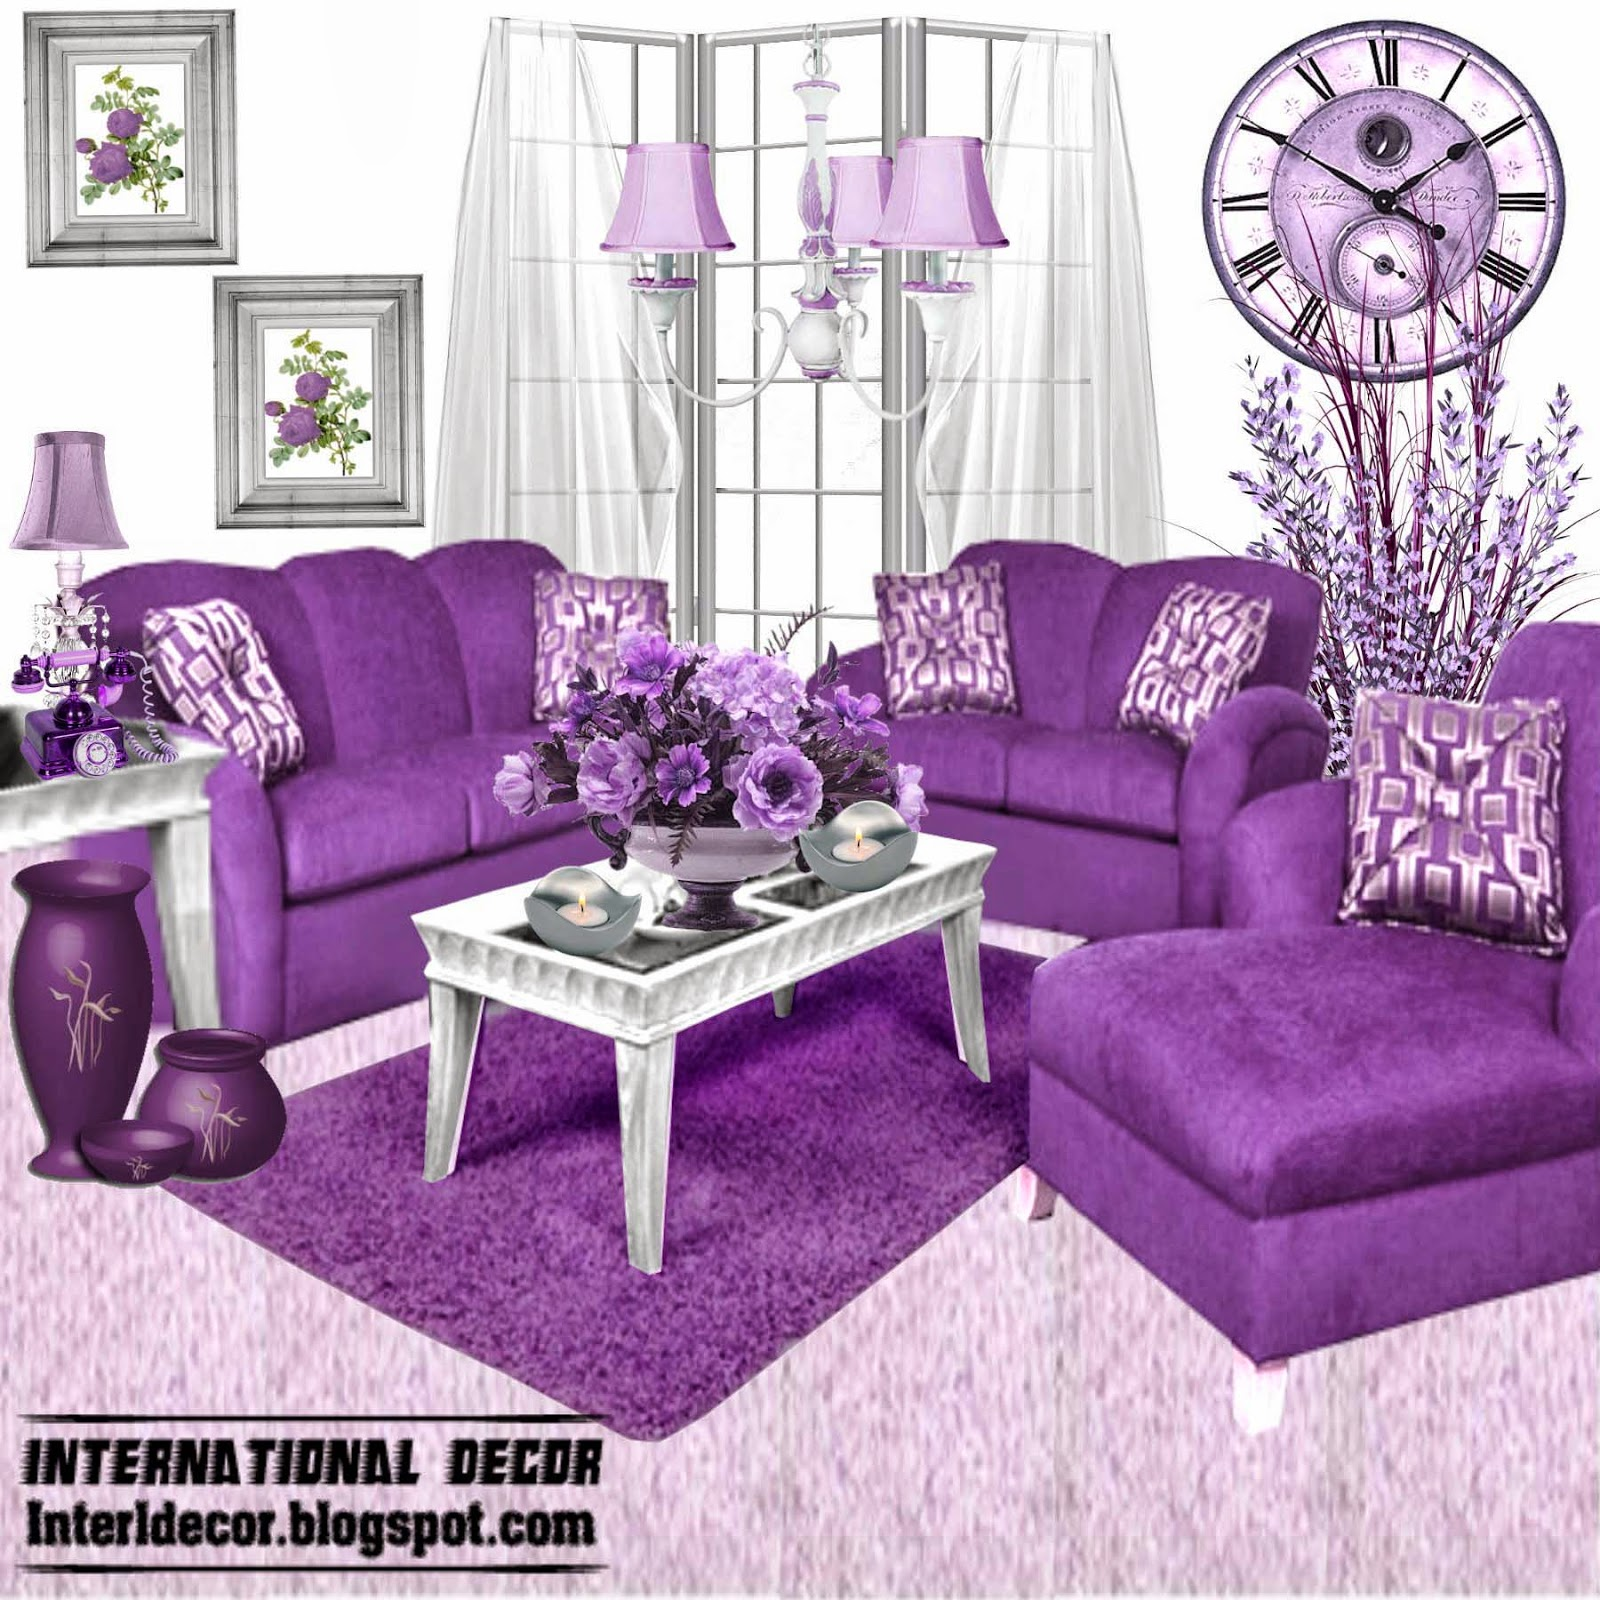 Luxury purple furniture sets sofas chairs for living for Living room sets